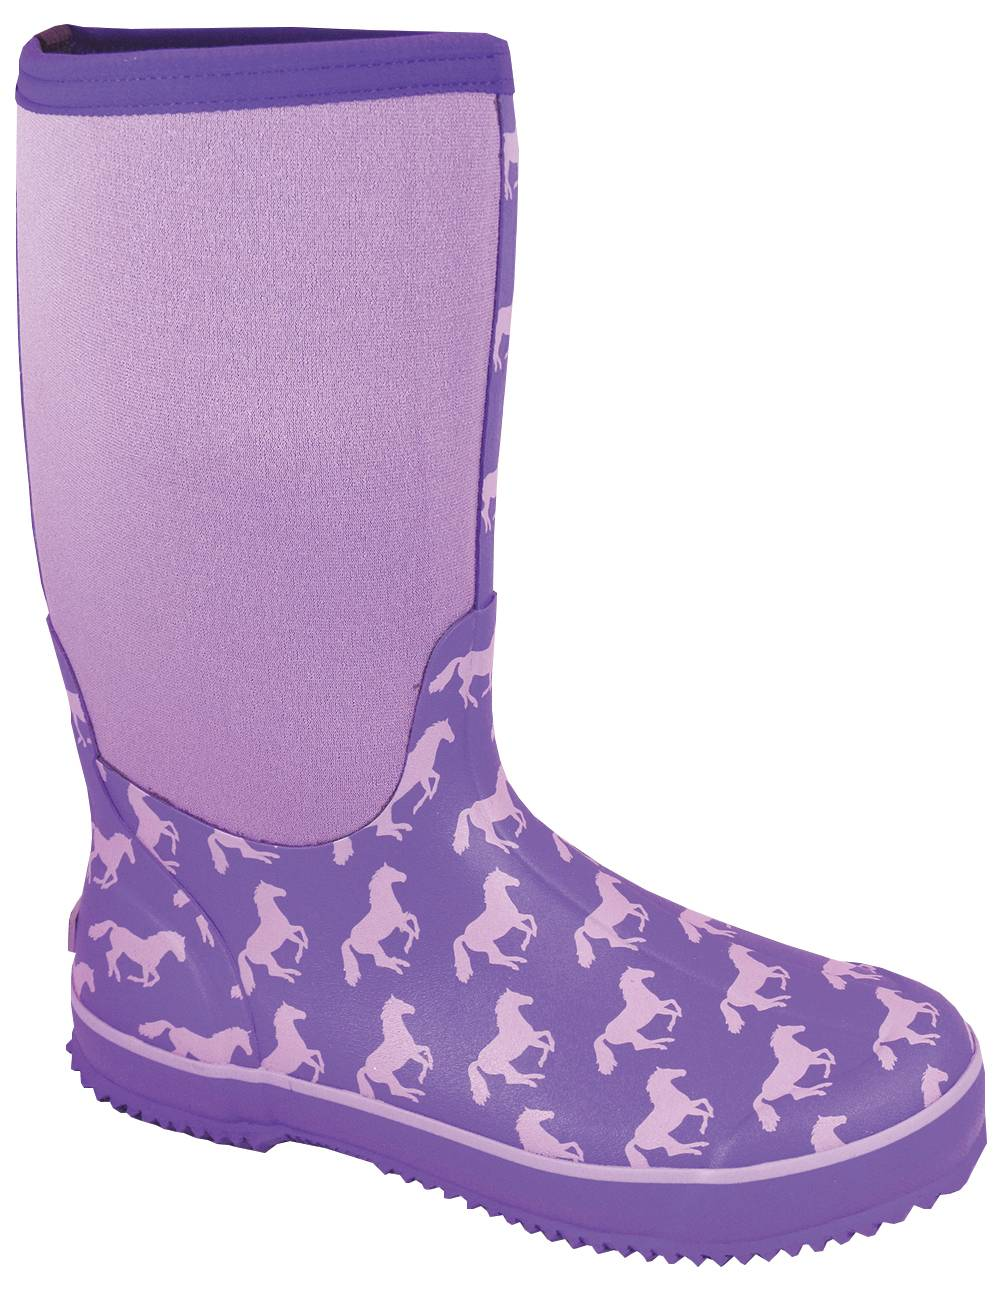 Smoky Mountain Women's Horses Amphibian Boots - Purple